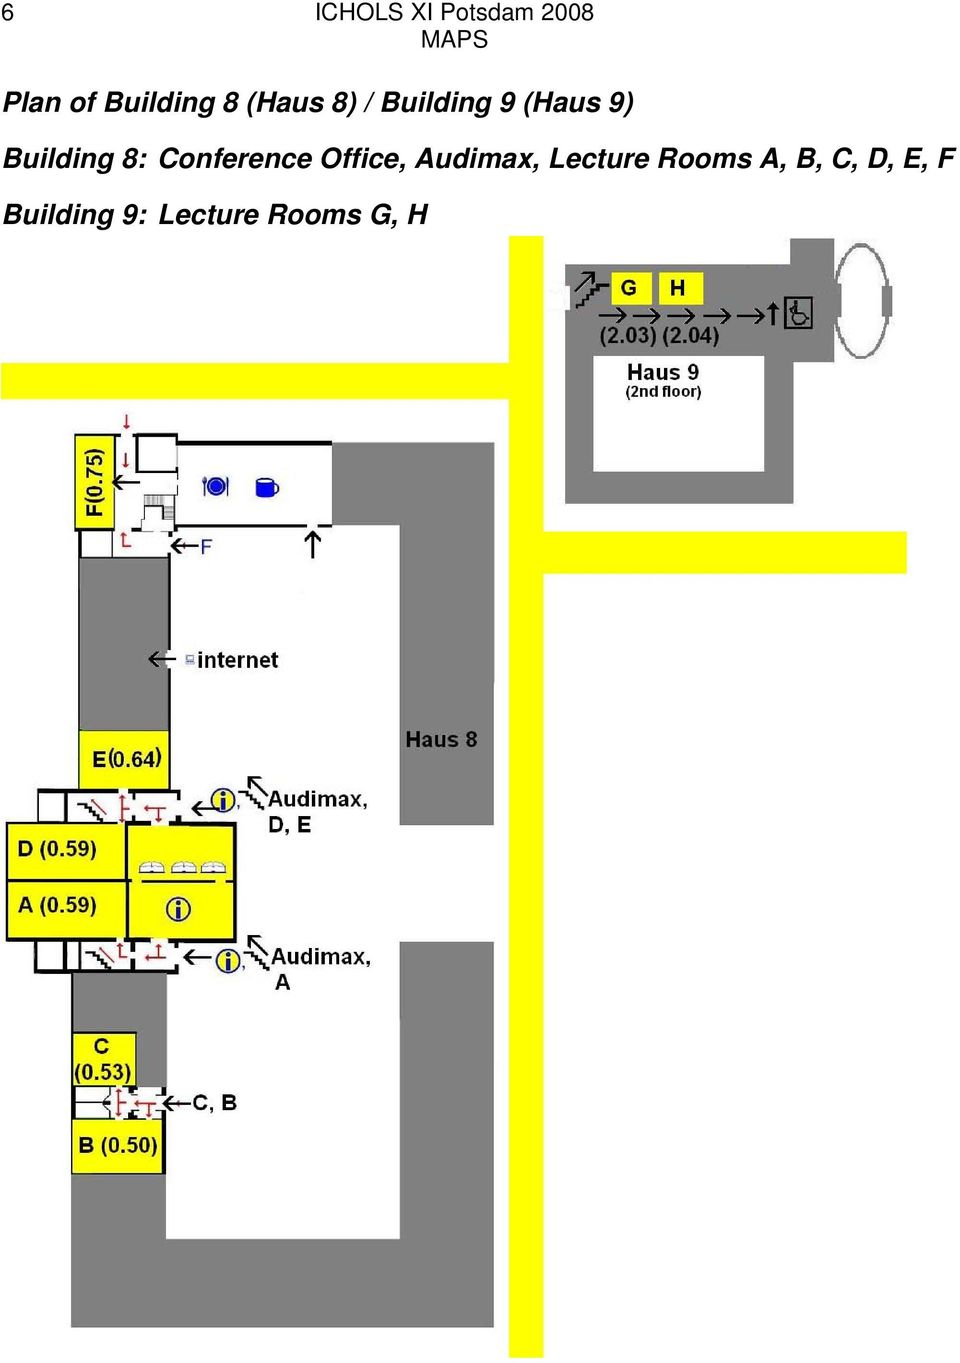 Building 8: Conference Office, Audimax,